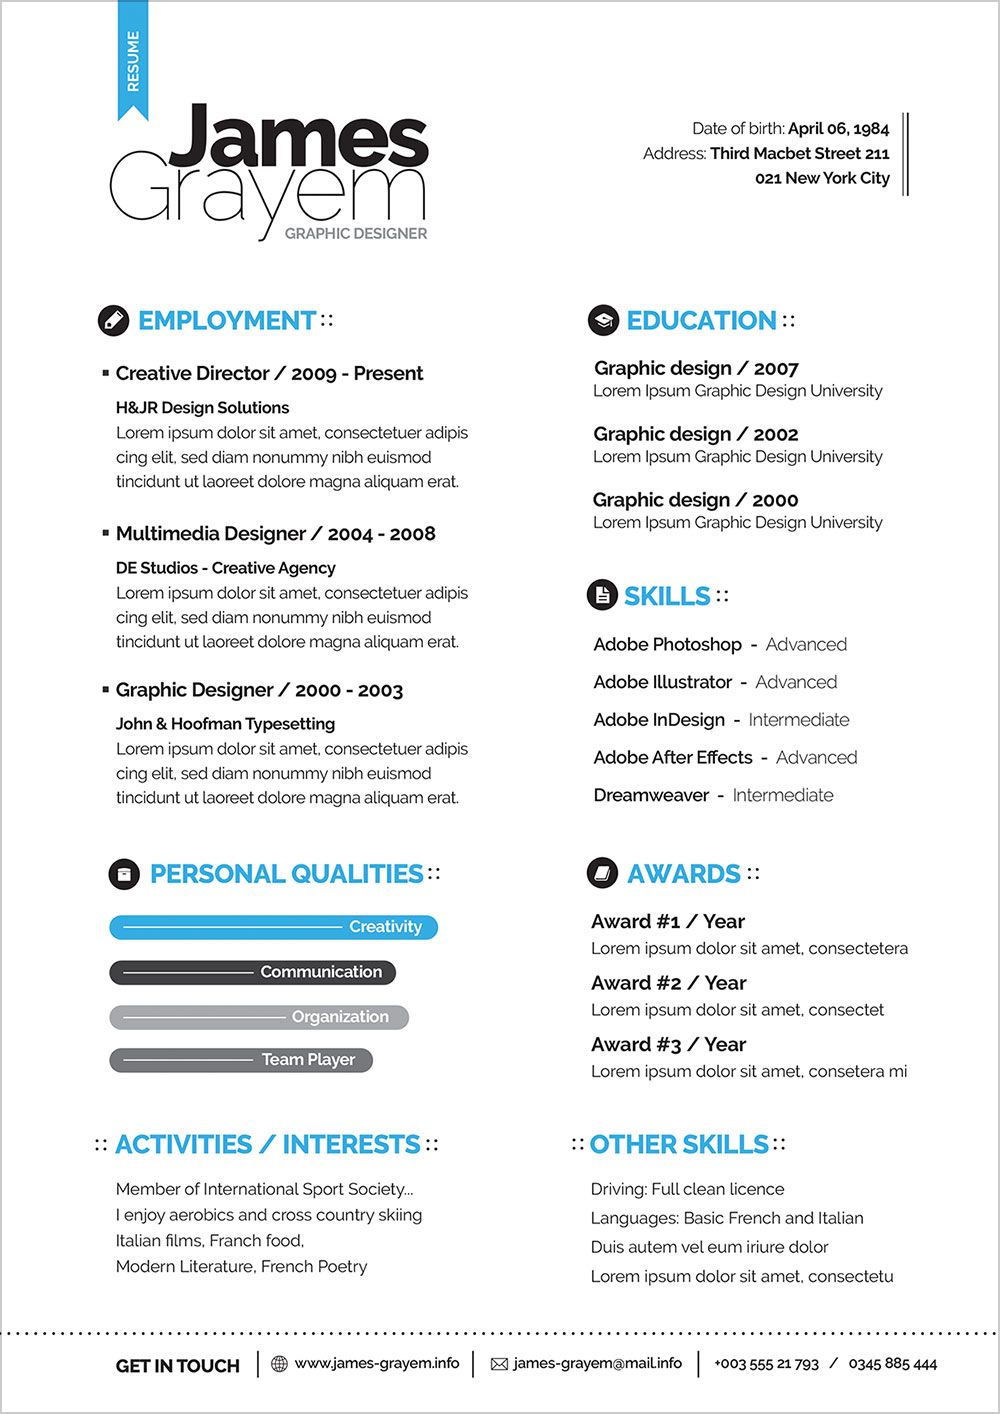 Free Professional Resume CV Template Amp Cover Letter For Creative Director Good Resume